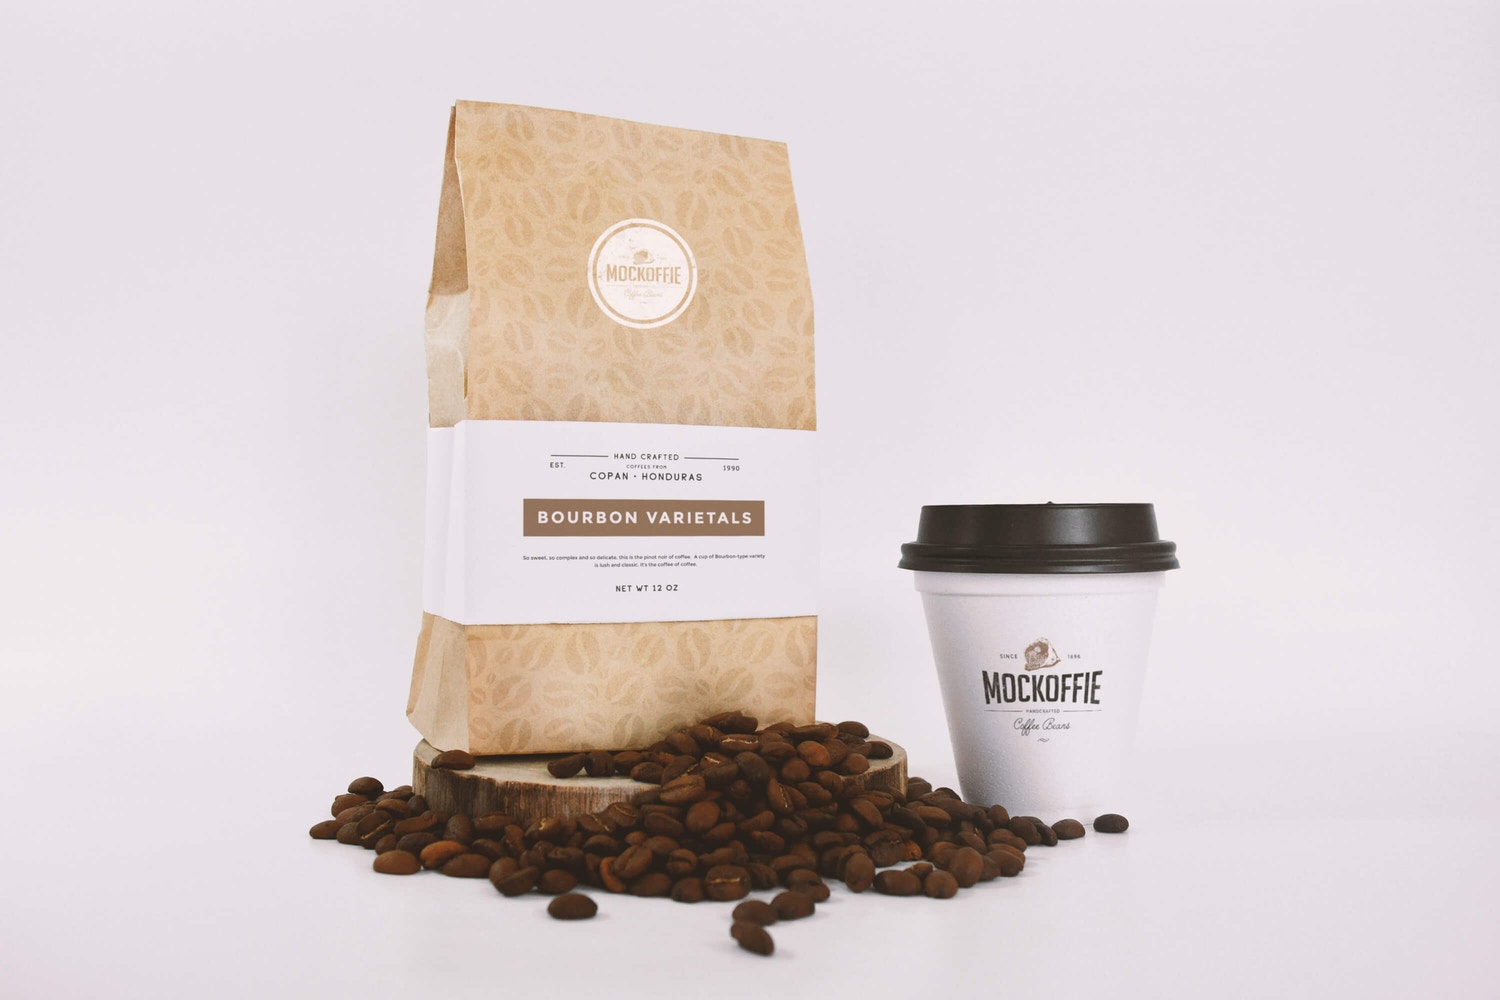 Coffee Bag and Sealed Cup Mockup (1) by Eduardo Mejia on Original Mockups